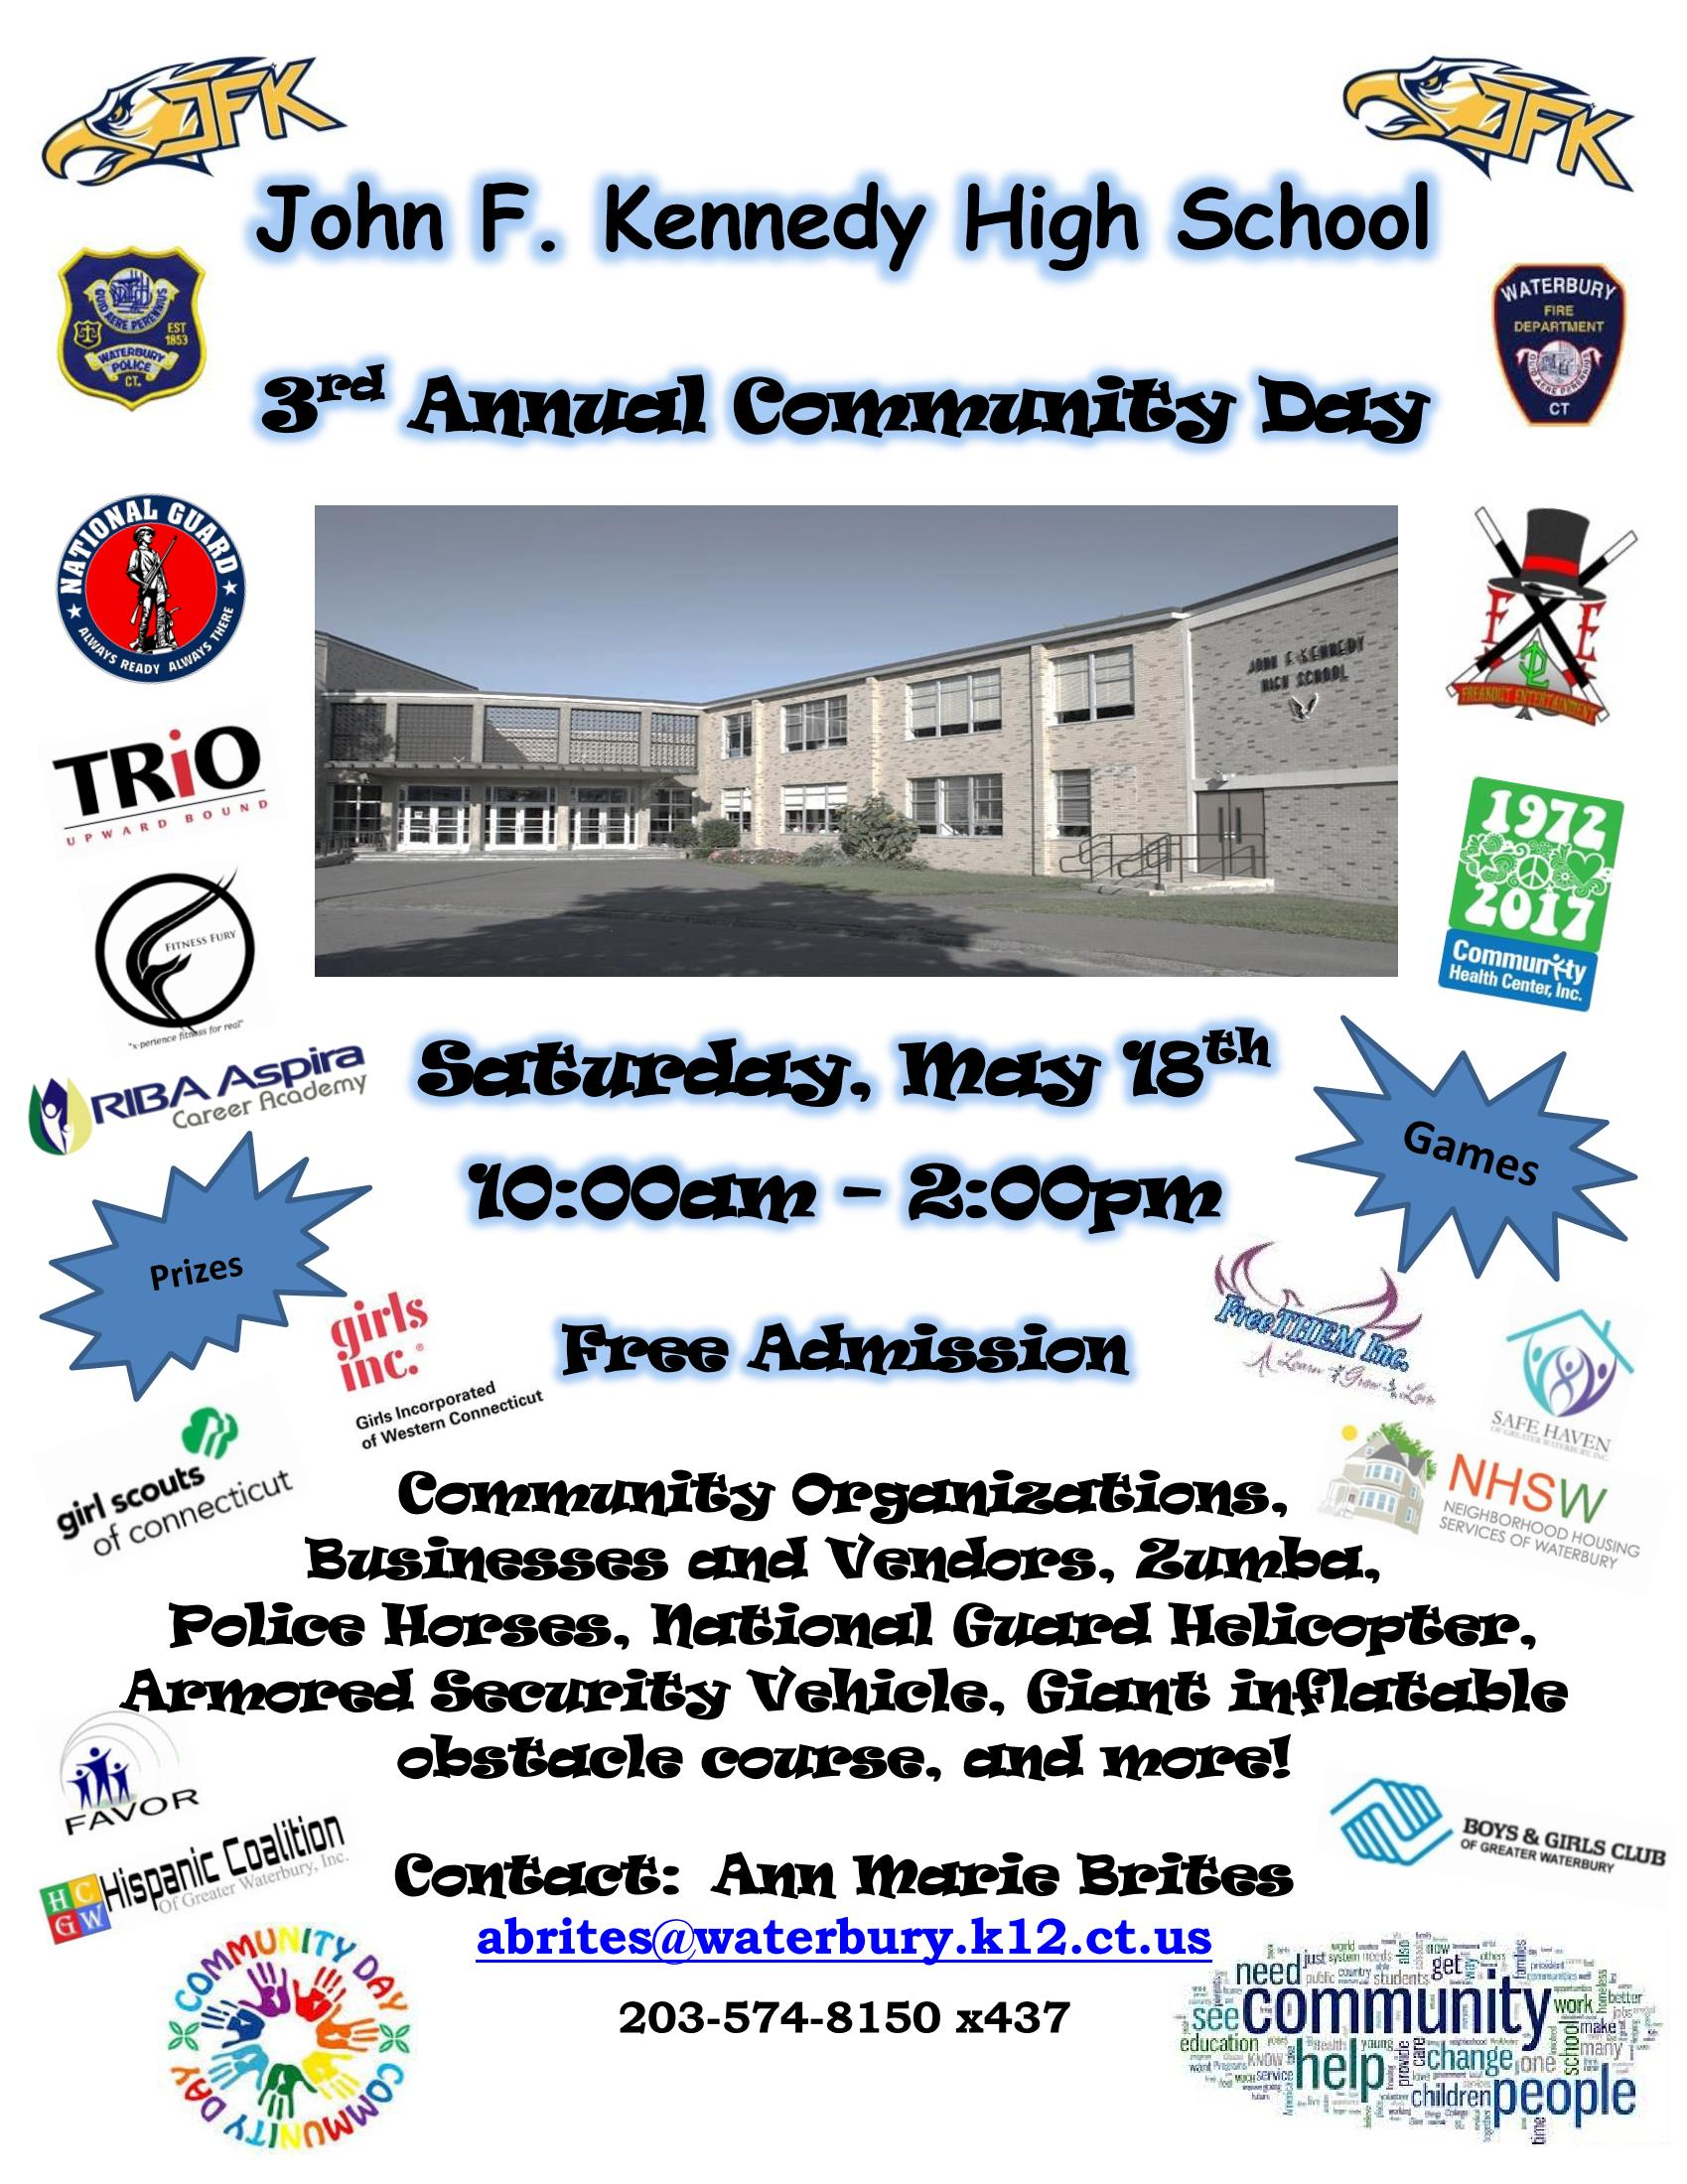 khs community day